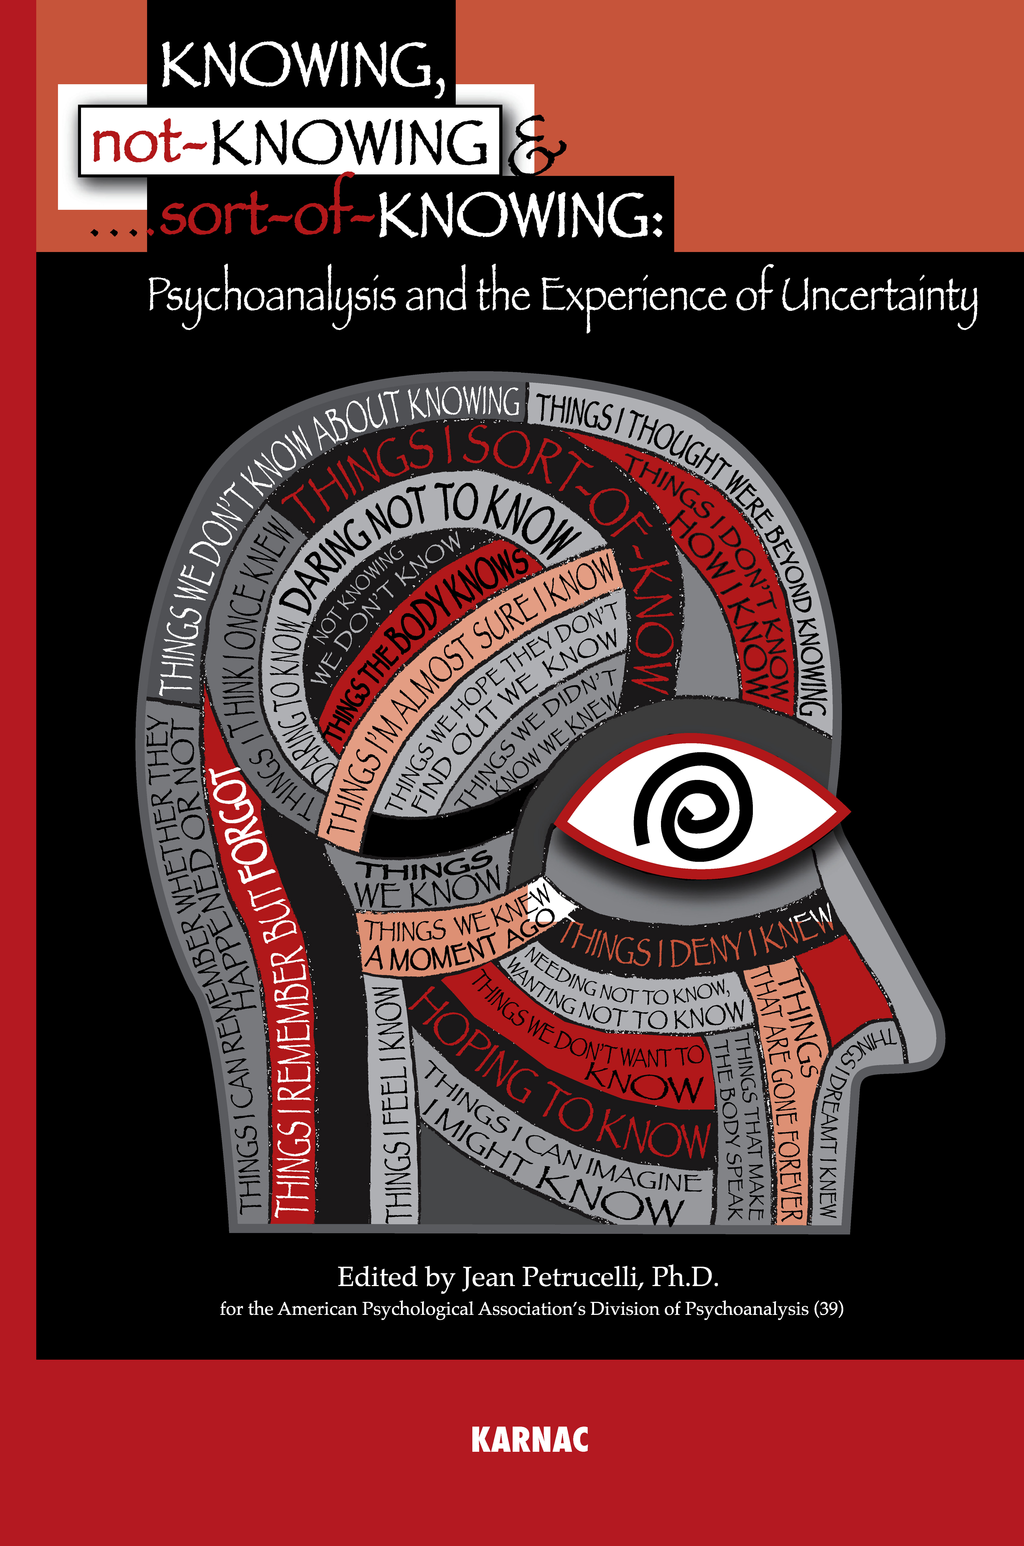 Knowing, Not-Knowing and Sort-of-Knowing: Psychoanalysis and the Experience of Uncertainty By: